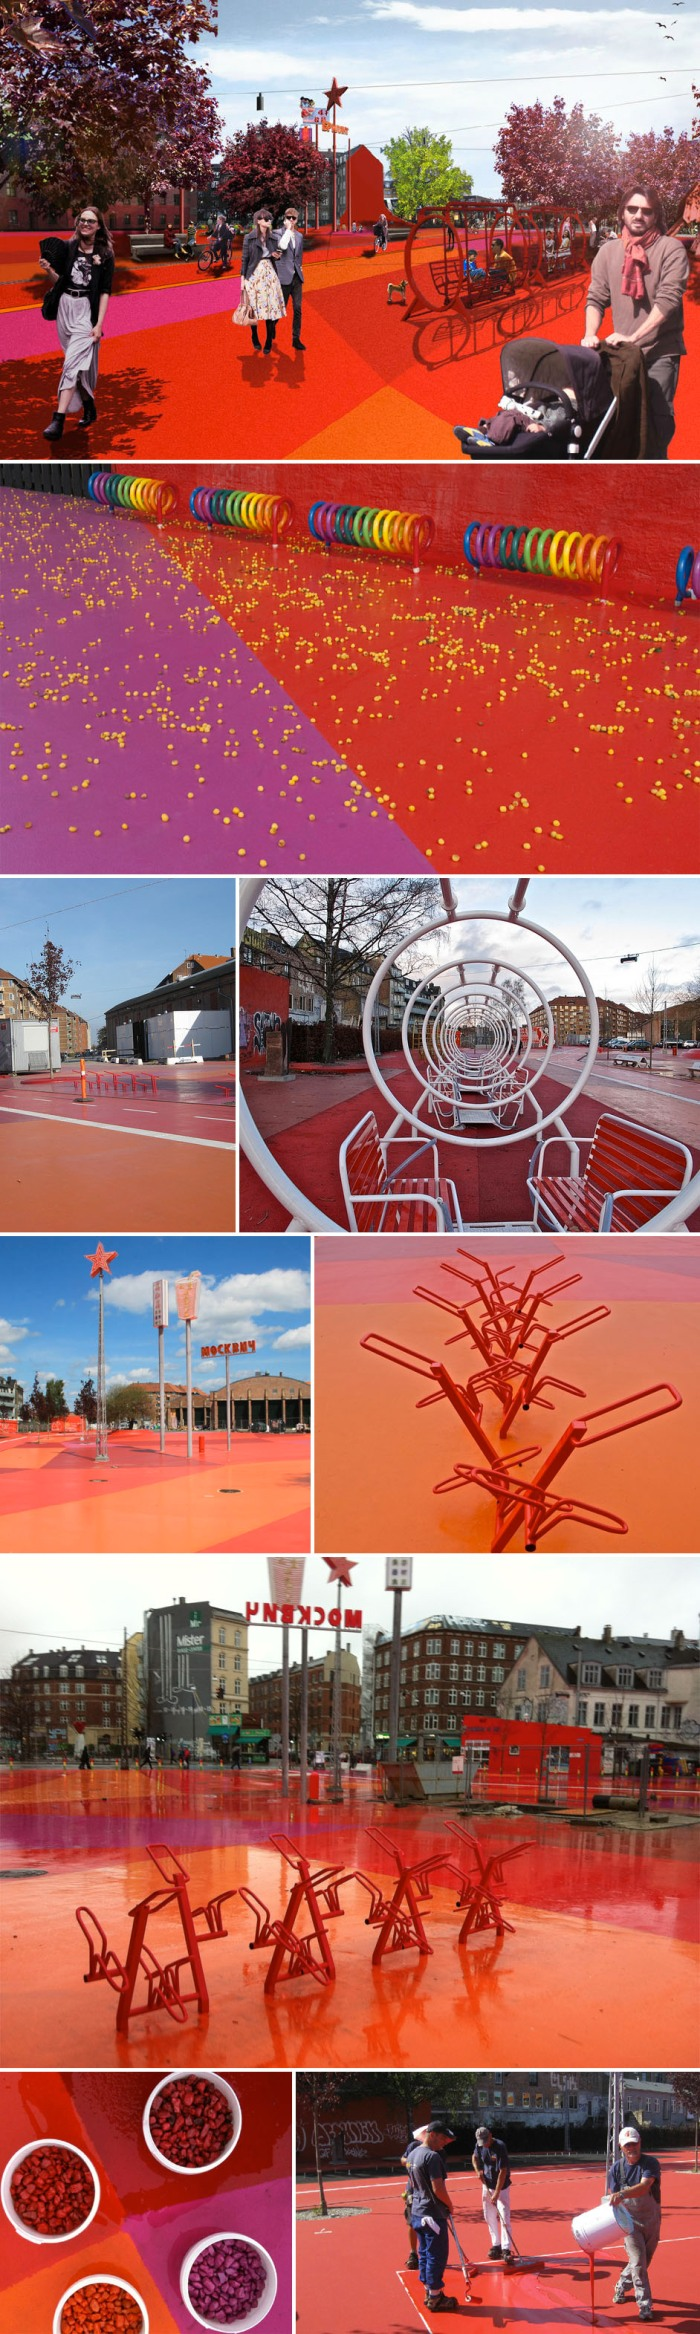 Park, playground, copenhagen, colorful park, Red Square, multicultural, bike path